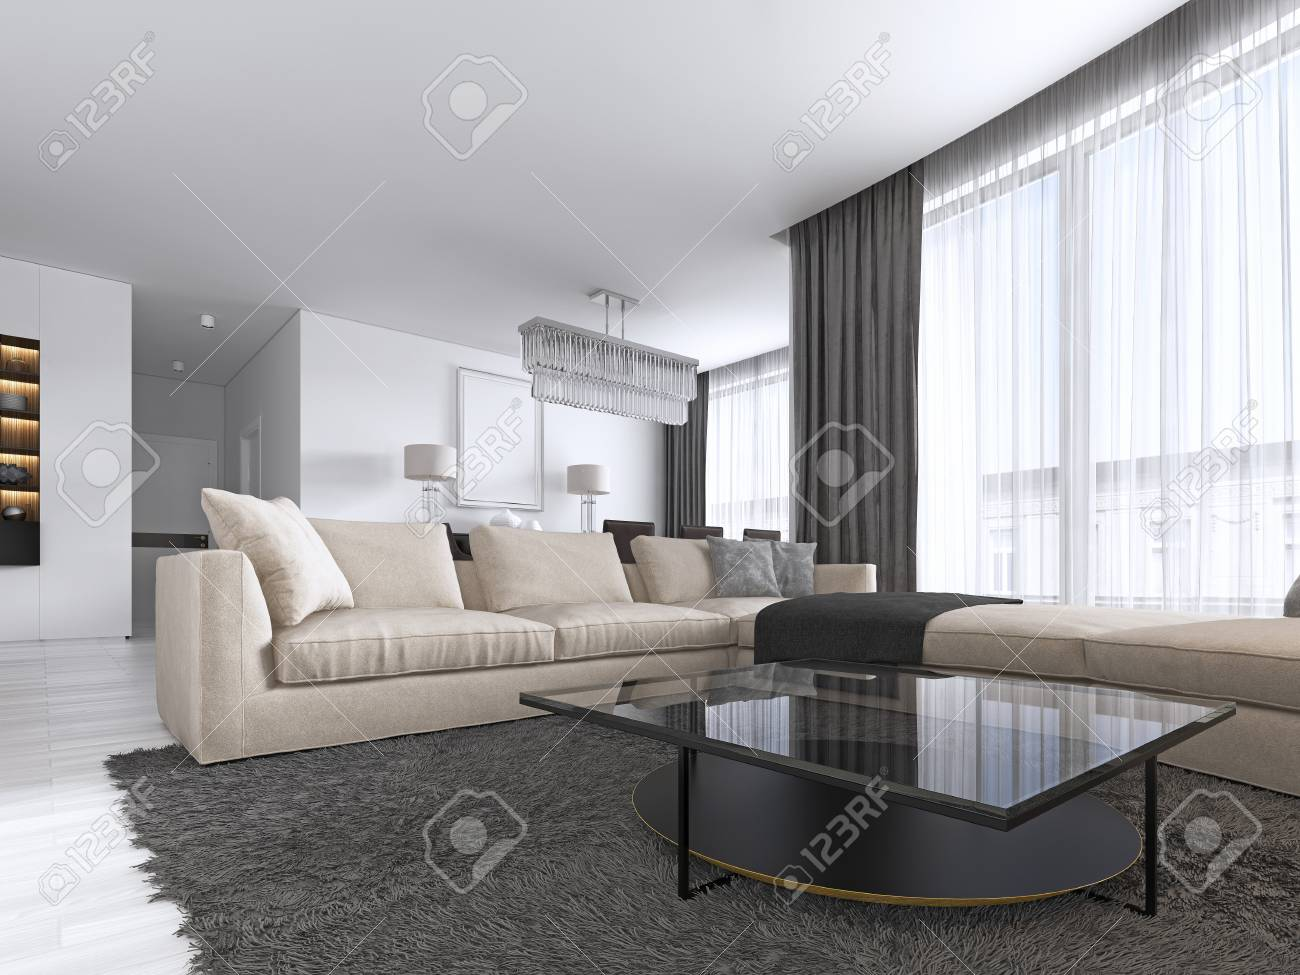 Interior Design Living Room With A Large Corner Sofa And A Tv